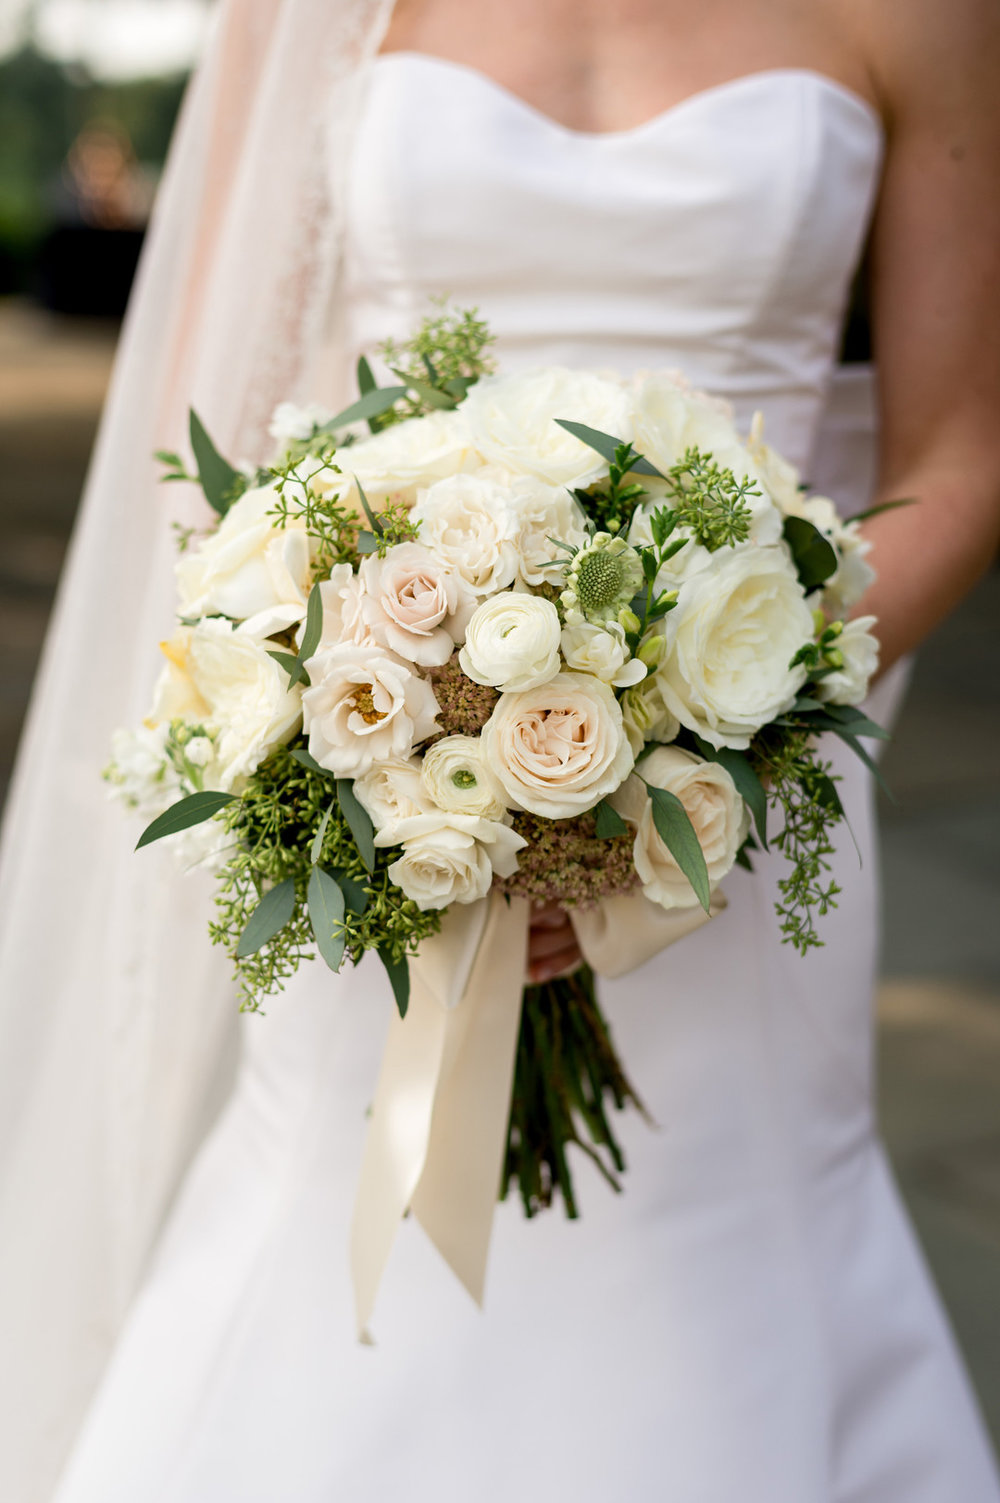 White Rose Floral Bridal Bouquet Chicago Wedding Julia Franzosa Photography